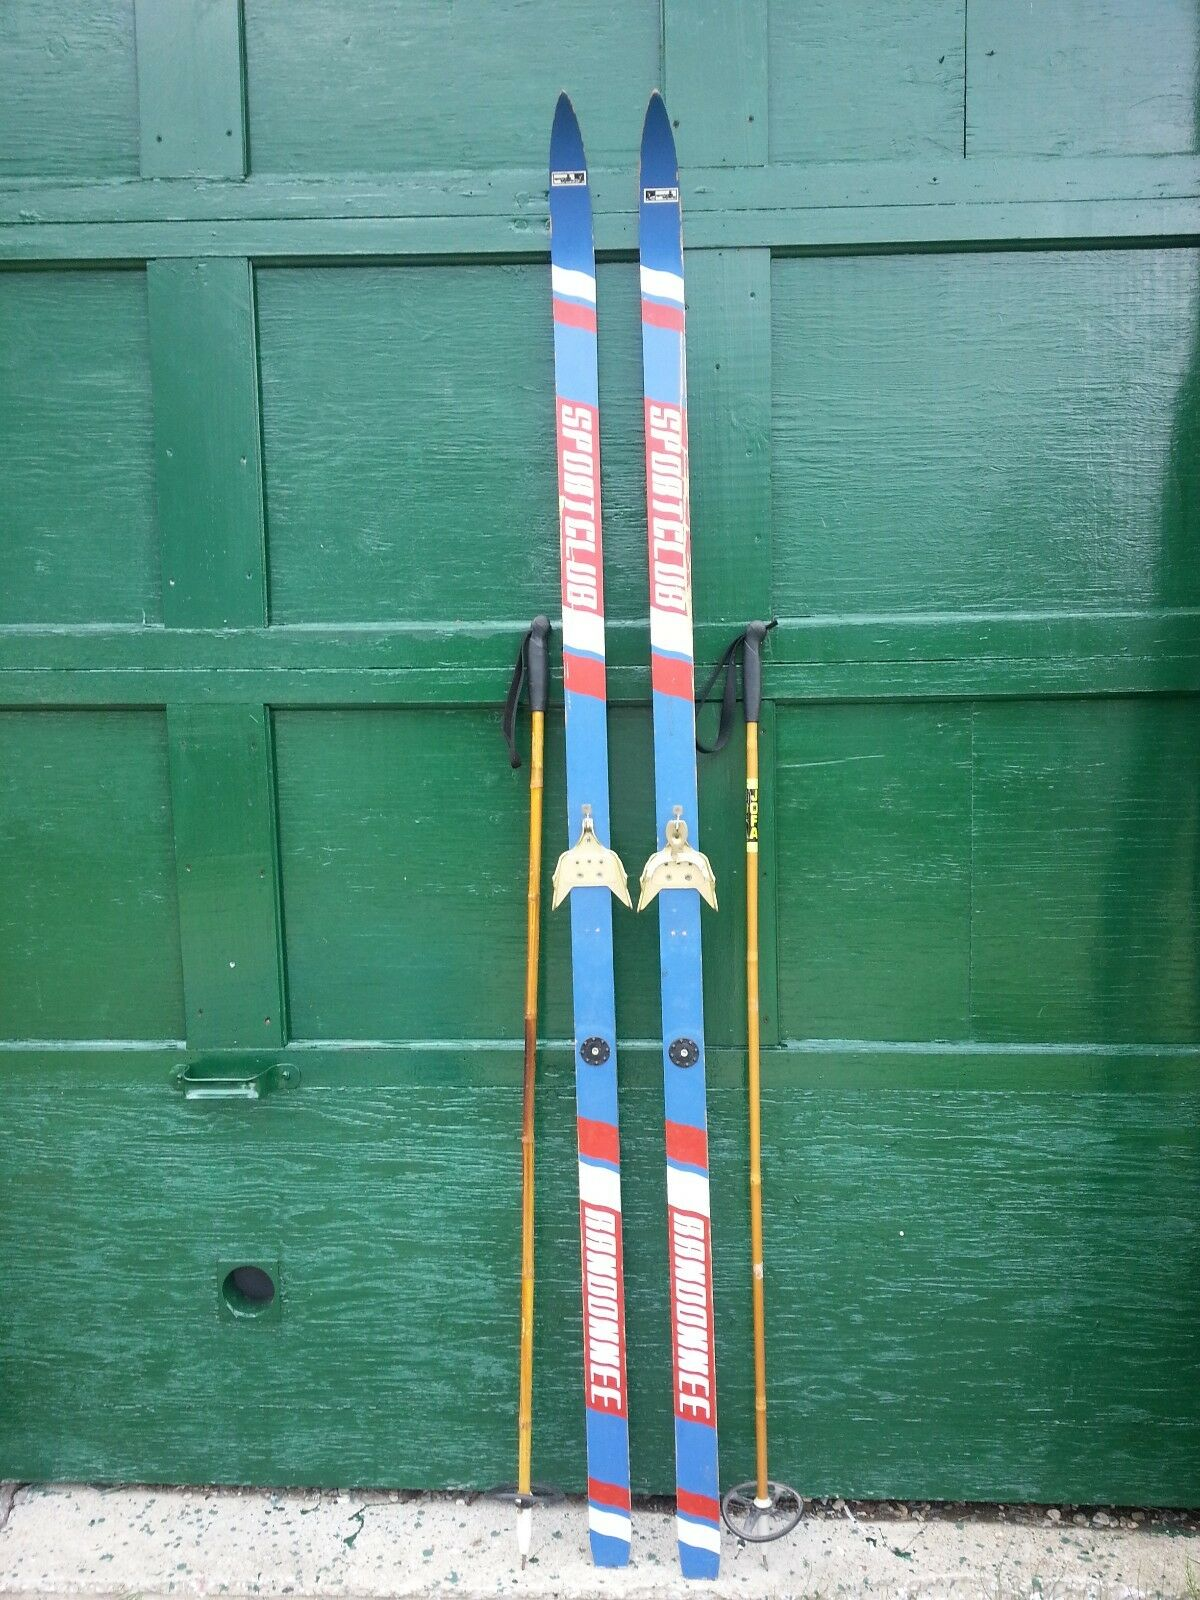 VINTAGE Wooden 76  Skis  with bluee  White and Red Finish with Cable Bindings  online shopping and fashion store